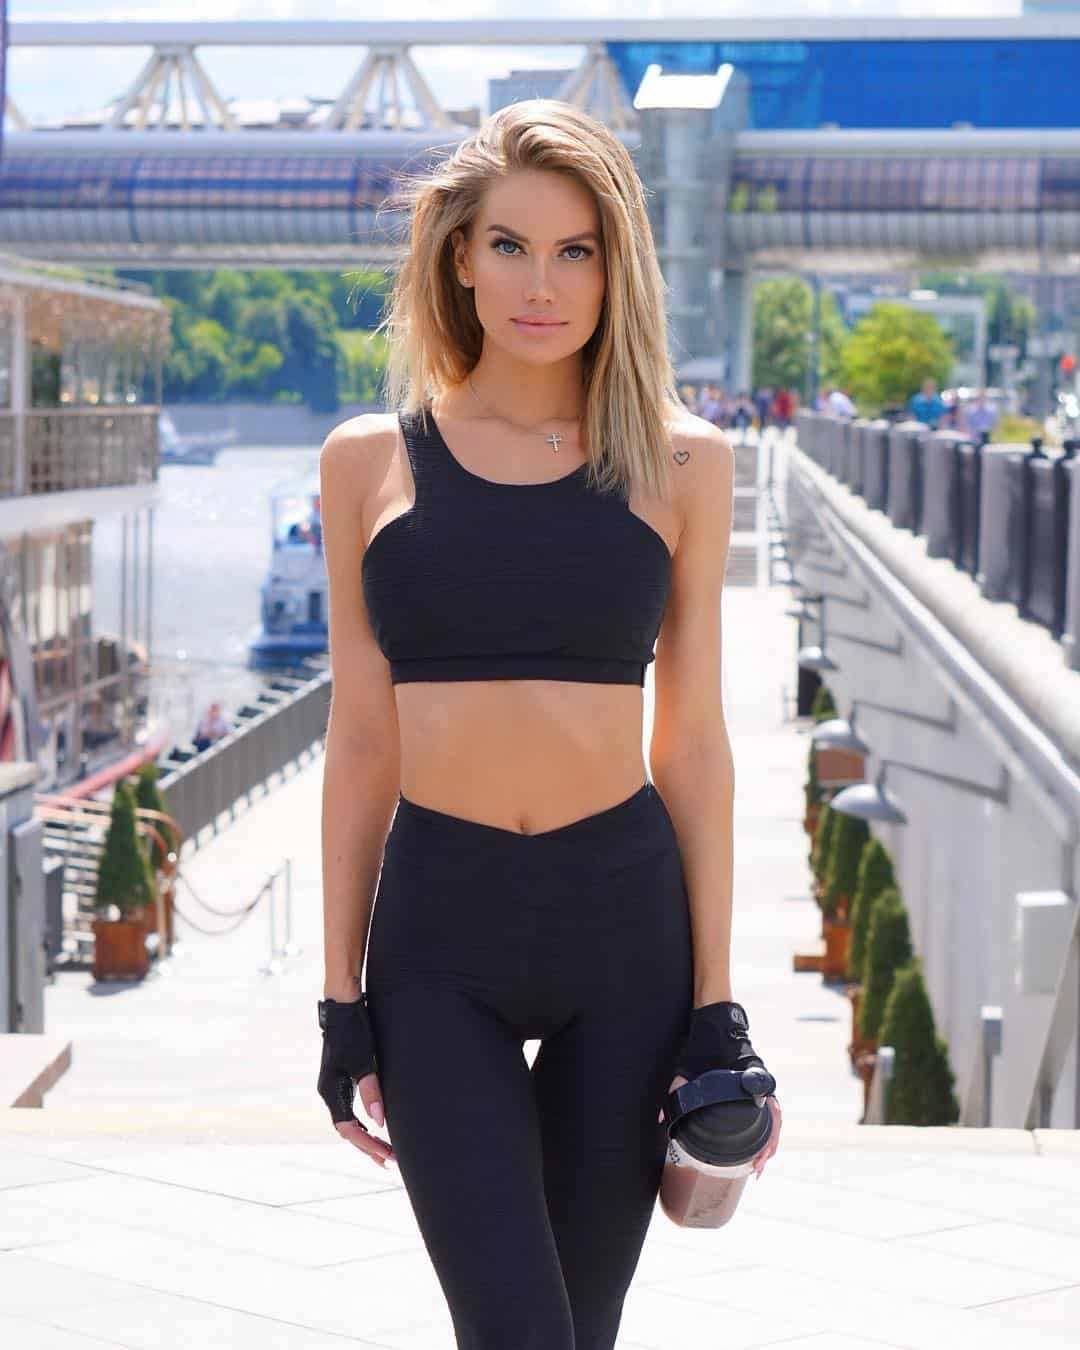 Anella Miller in her fitness suit